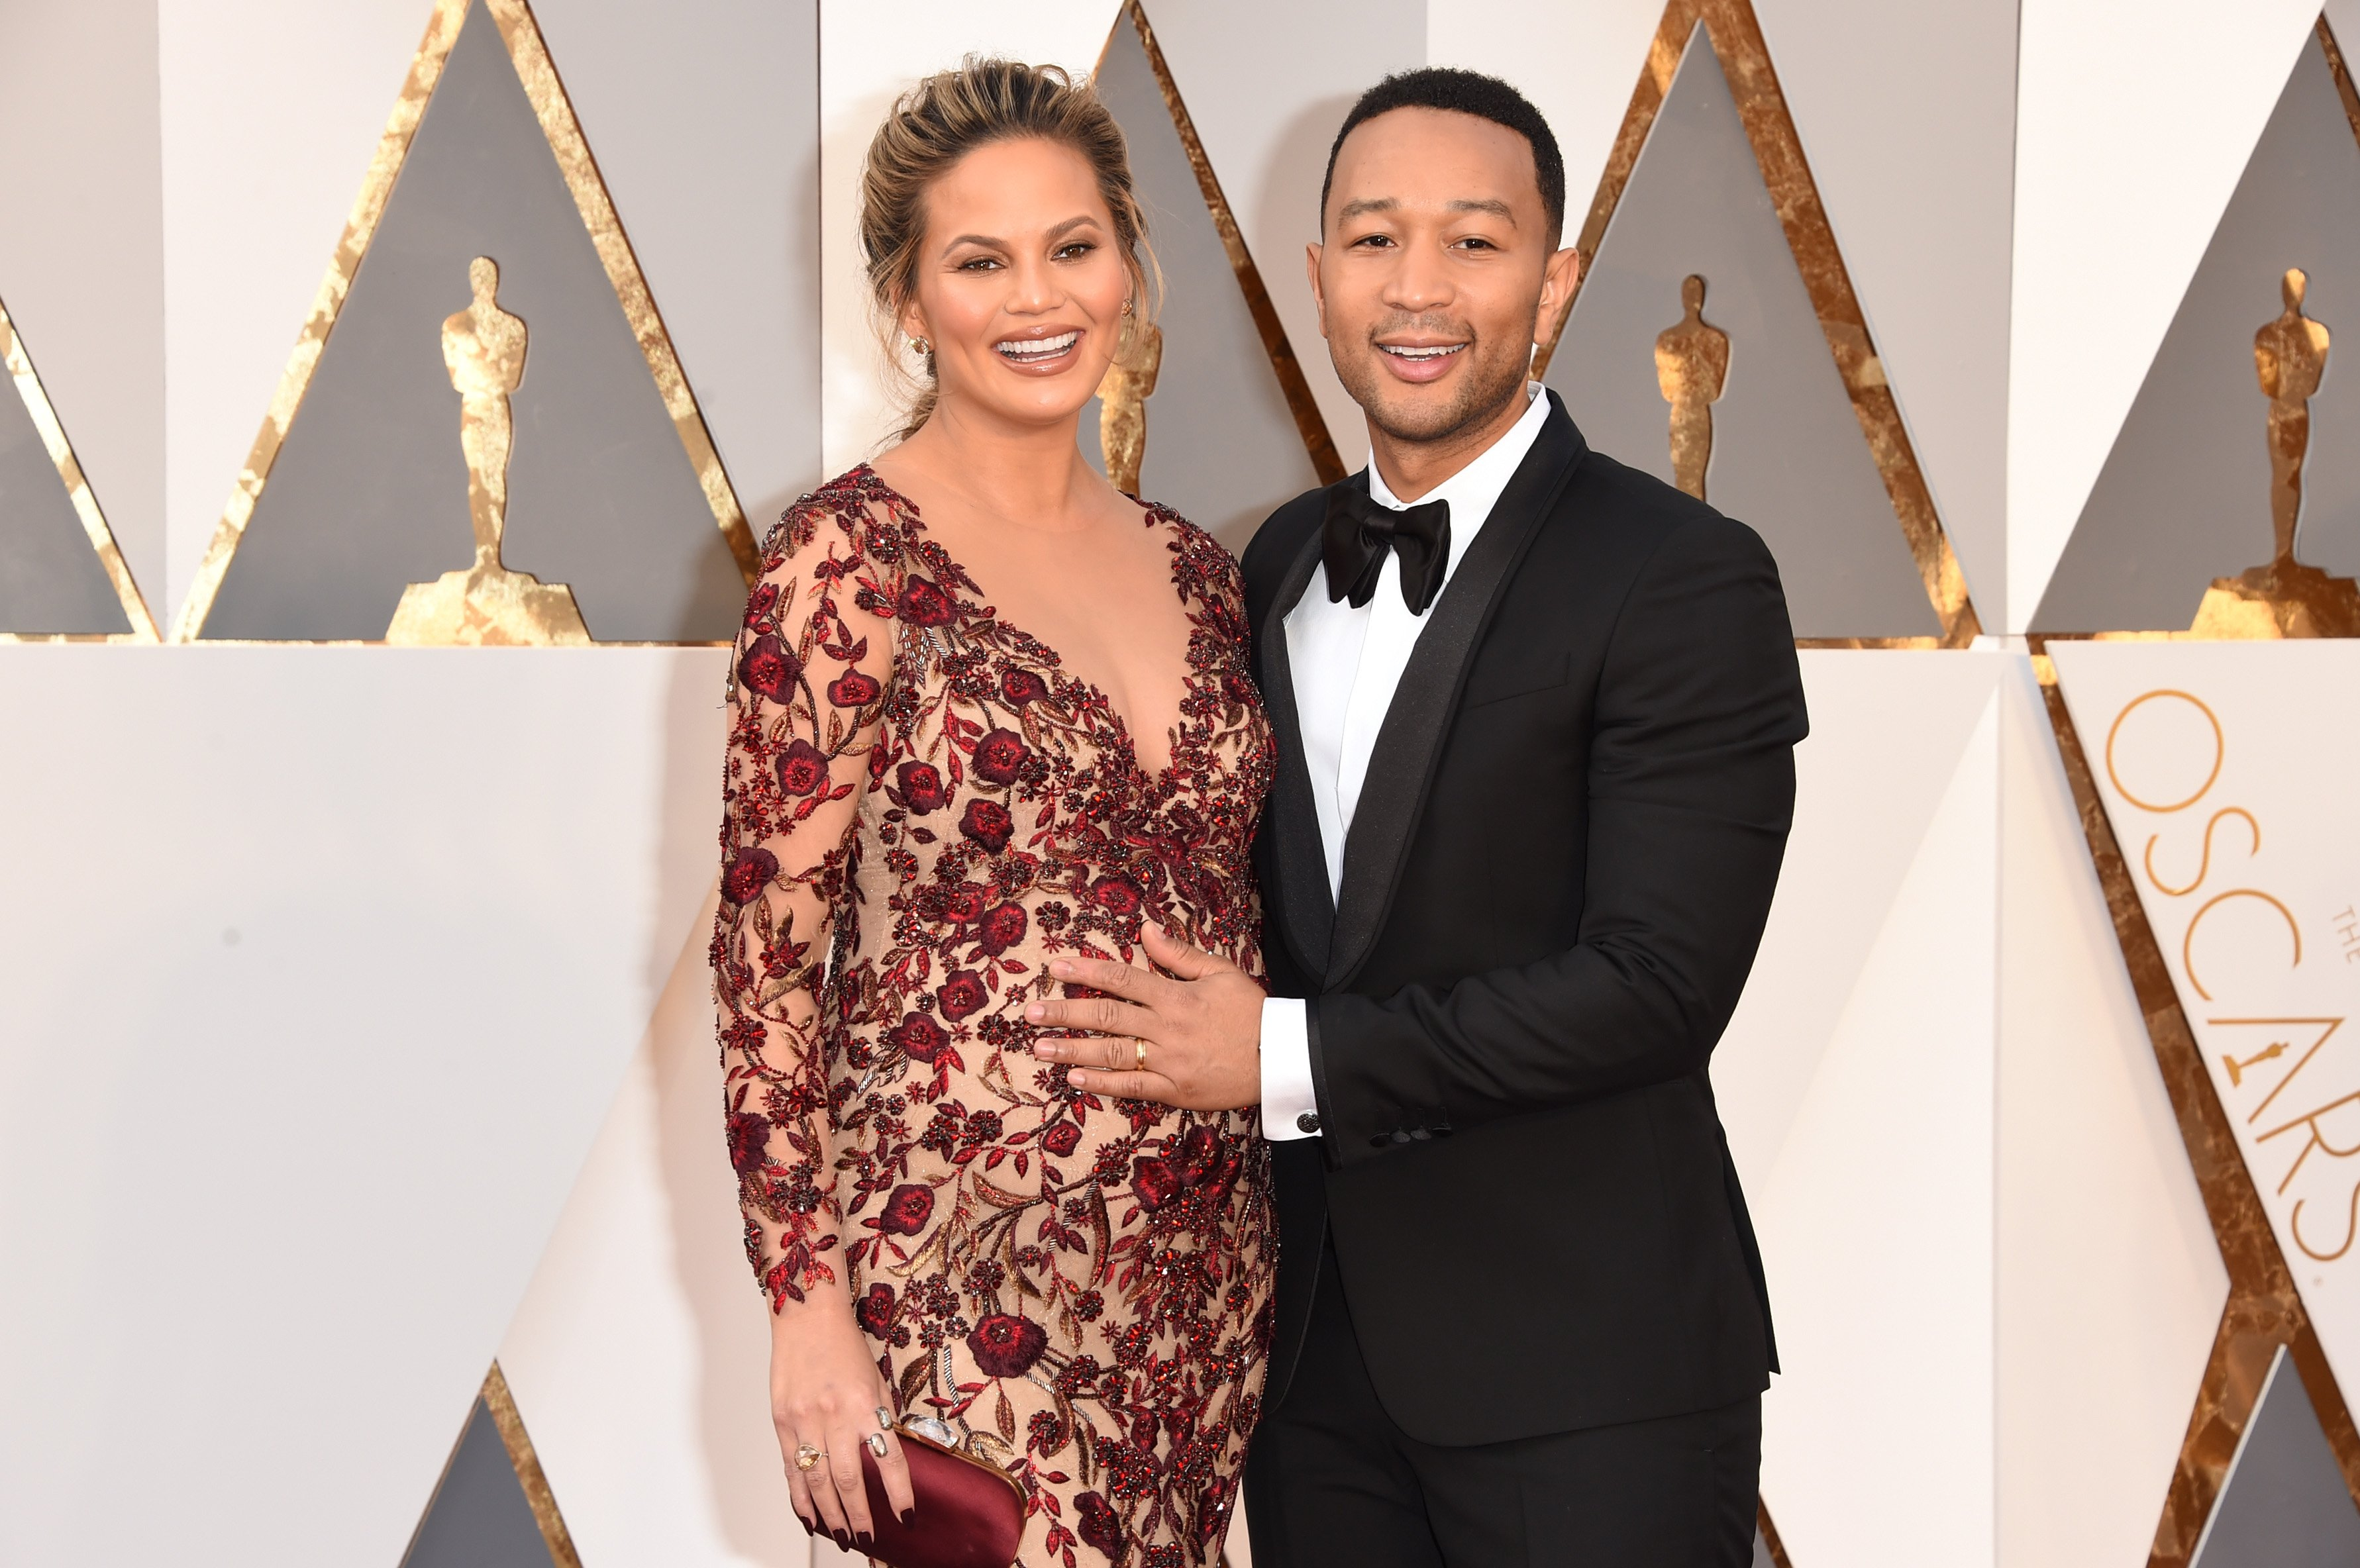 Chrissy Teigen and John Legend during the 88th Academy Awards in Hollywood in 2016.   Photo: Getty Images